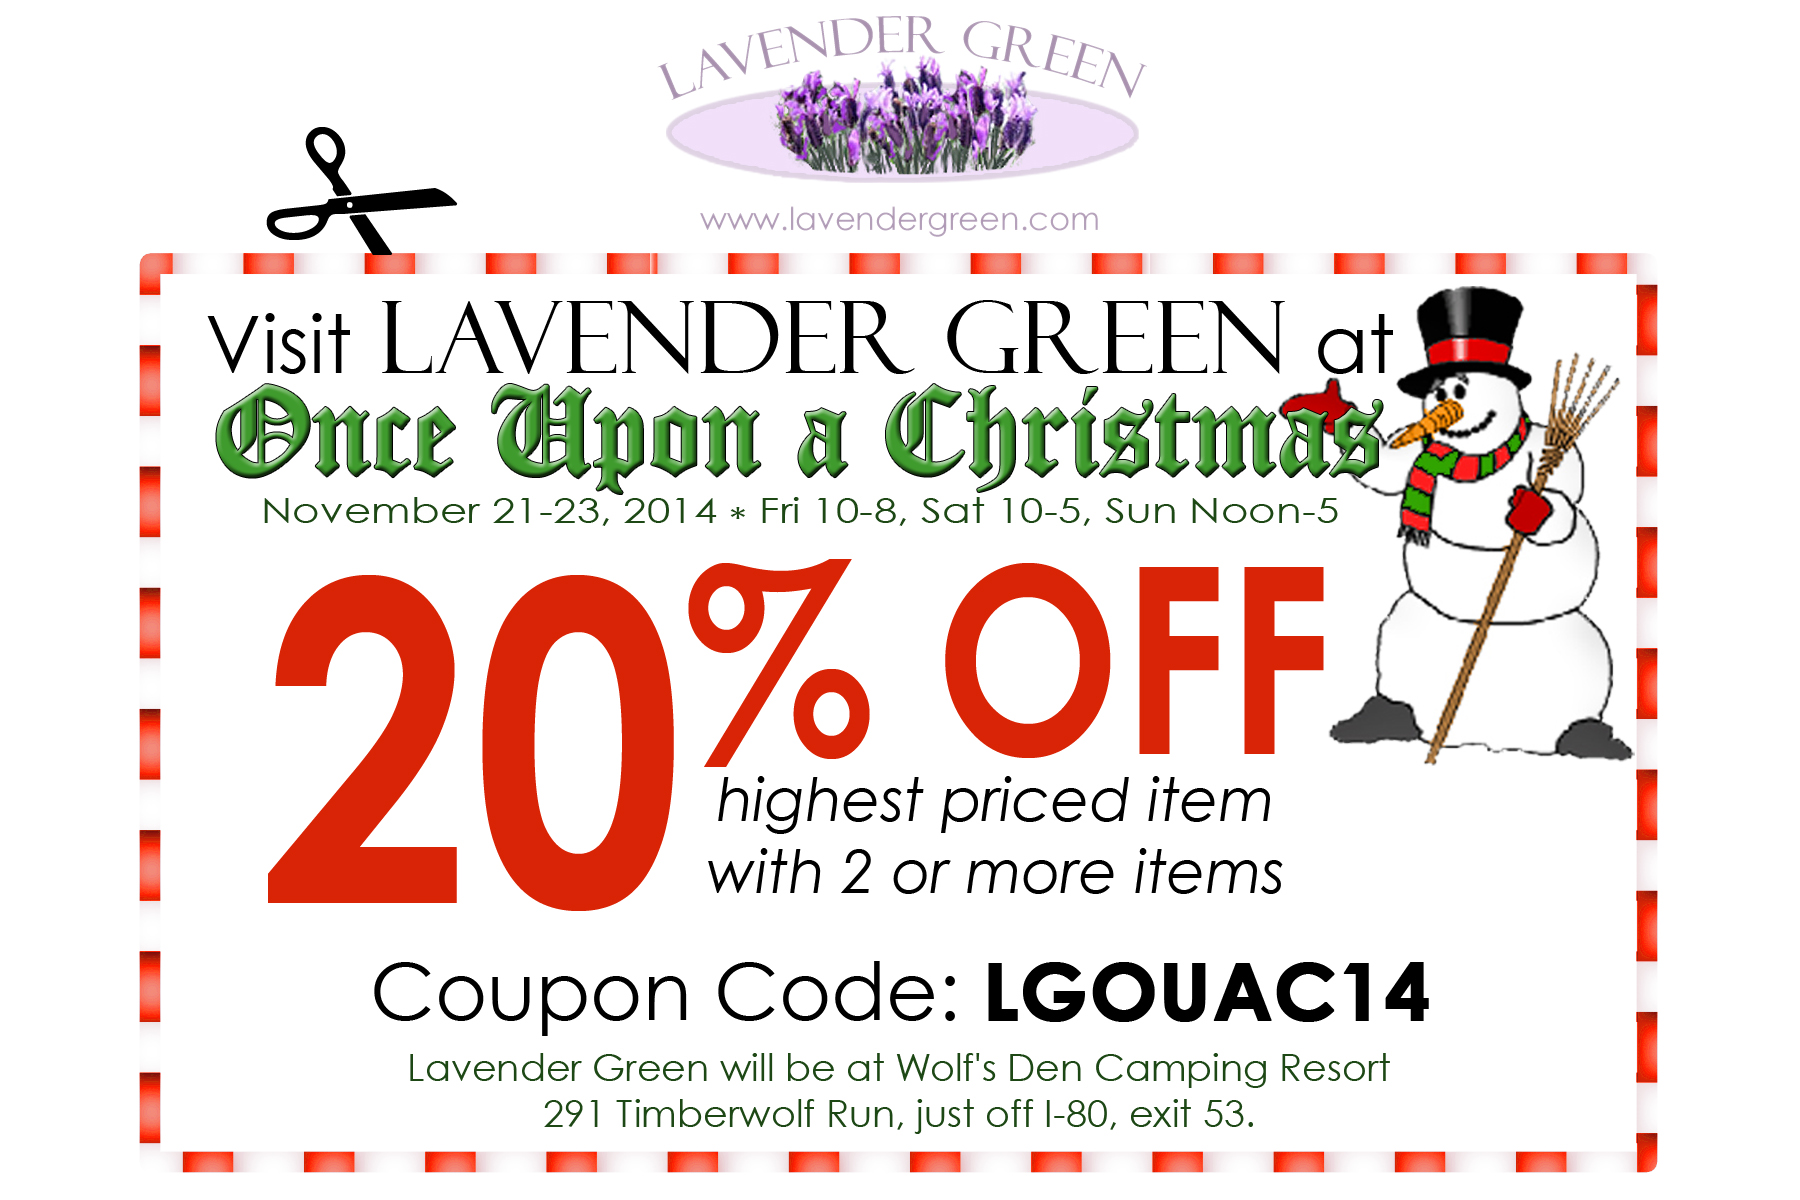 From Lavender Green - 20% off Highest Priced item with 2 or more items at Once Upon A Christmas, Knox, PA - November 21-23, 2014 * Fri 10-8, Sat 10-5, Sun Noon-5